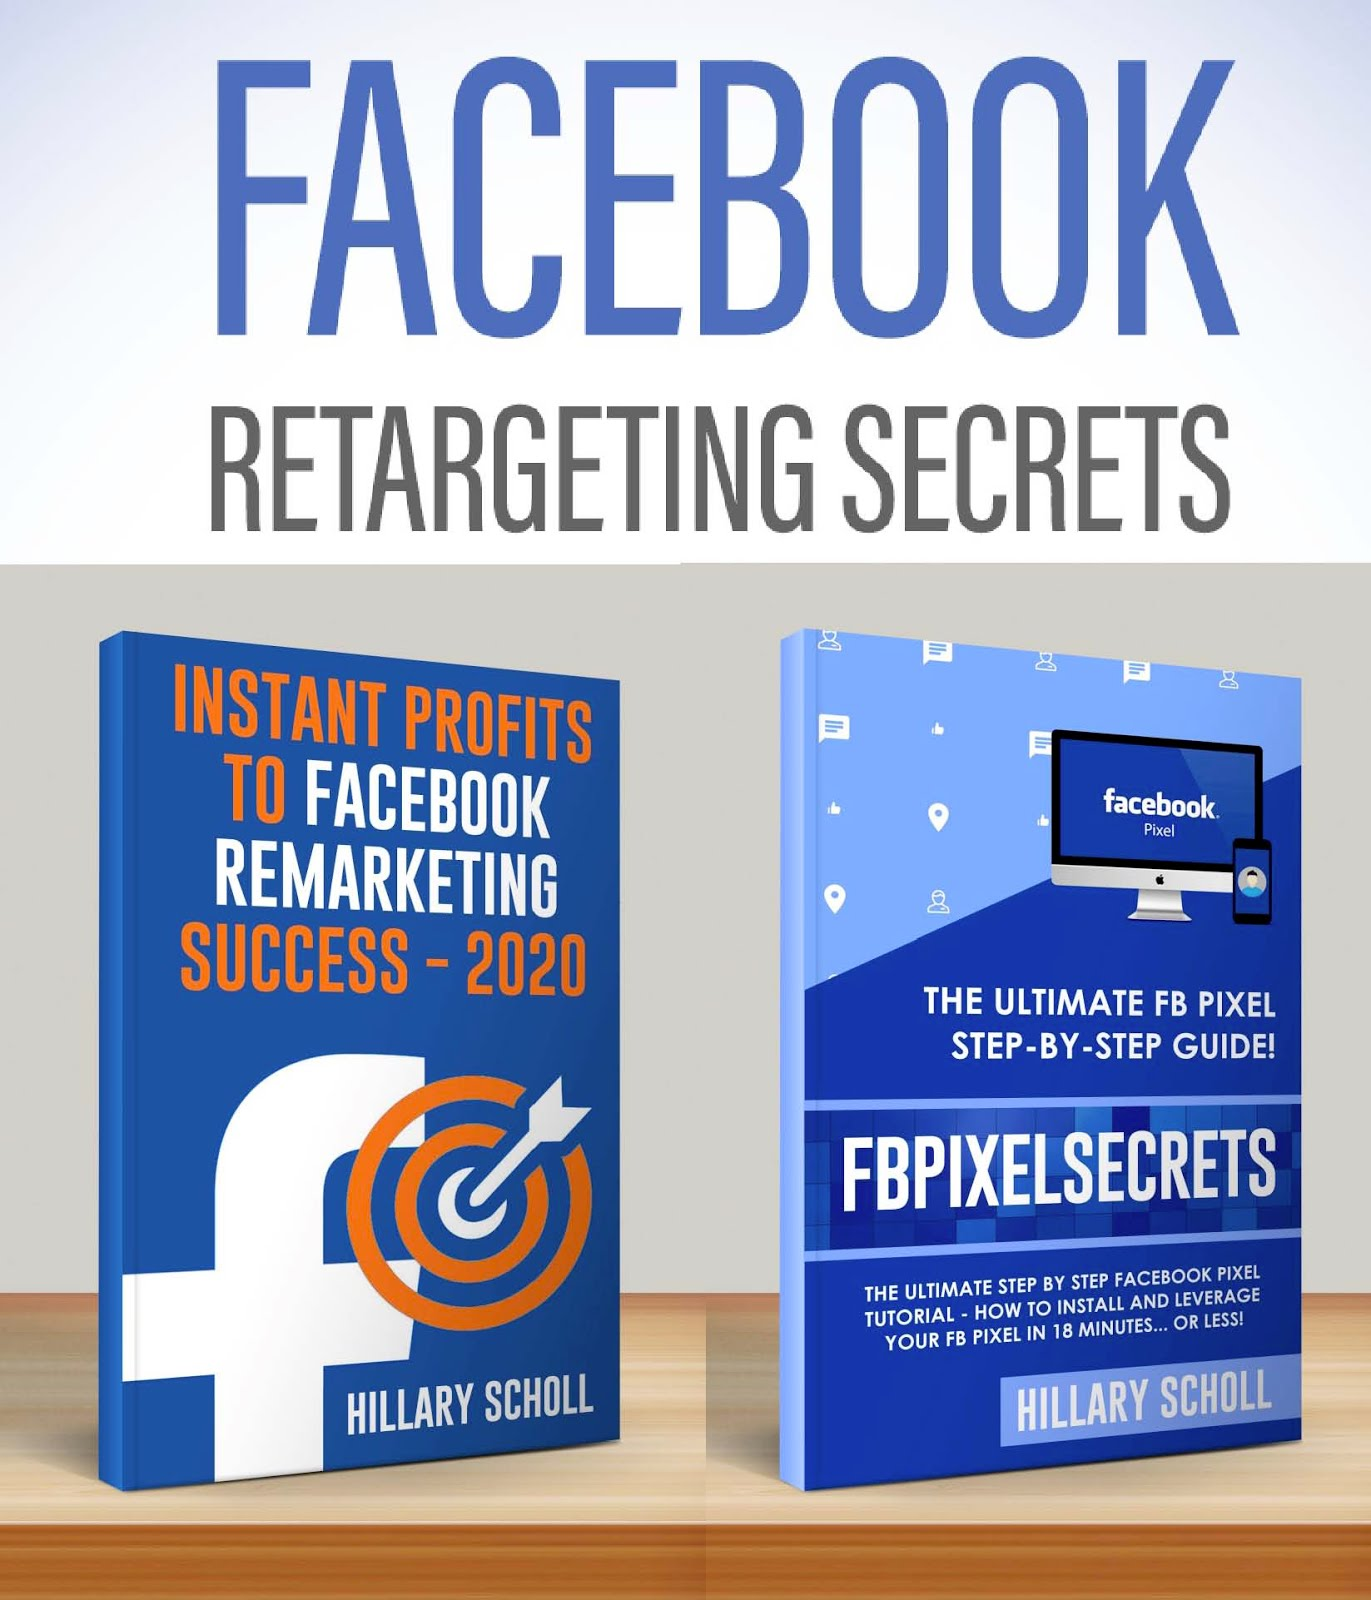 Facebook FB -ReTargeting Secrets